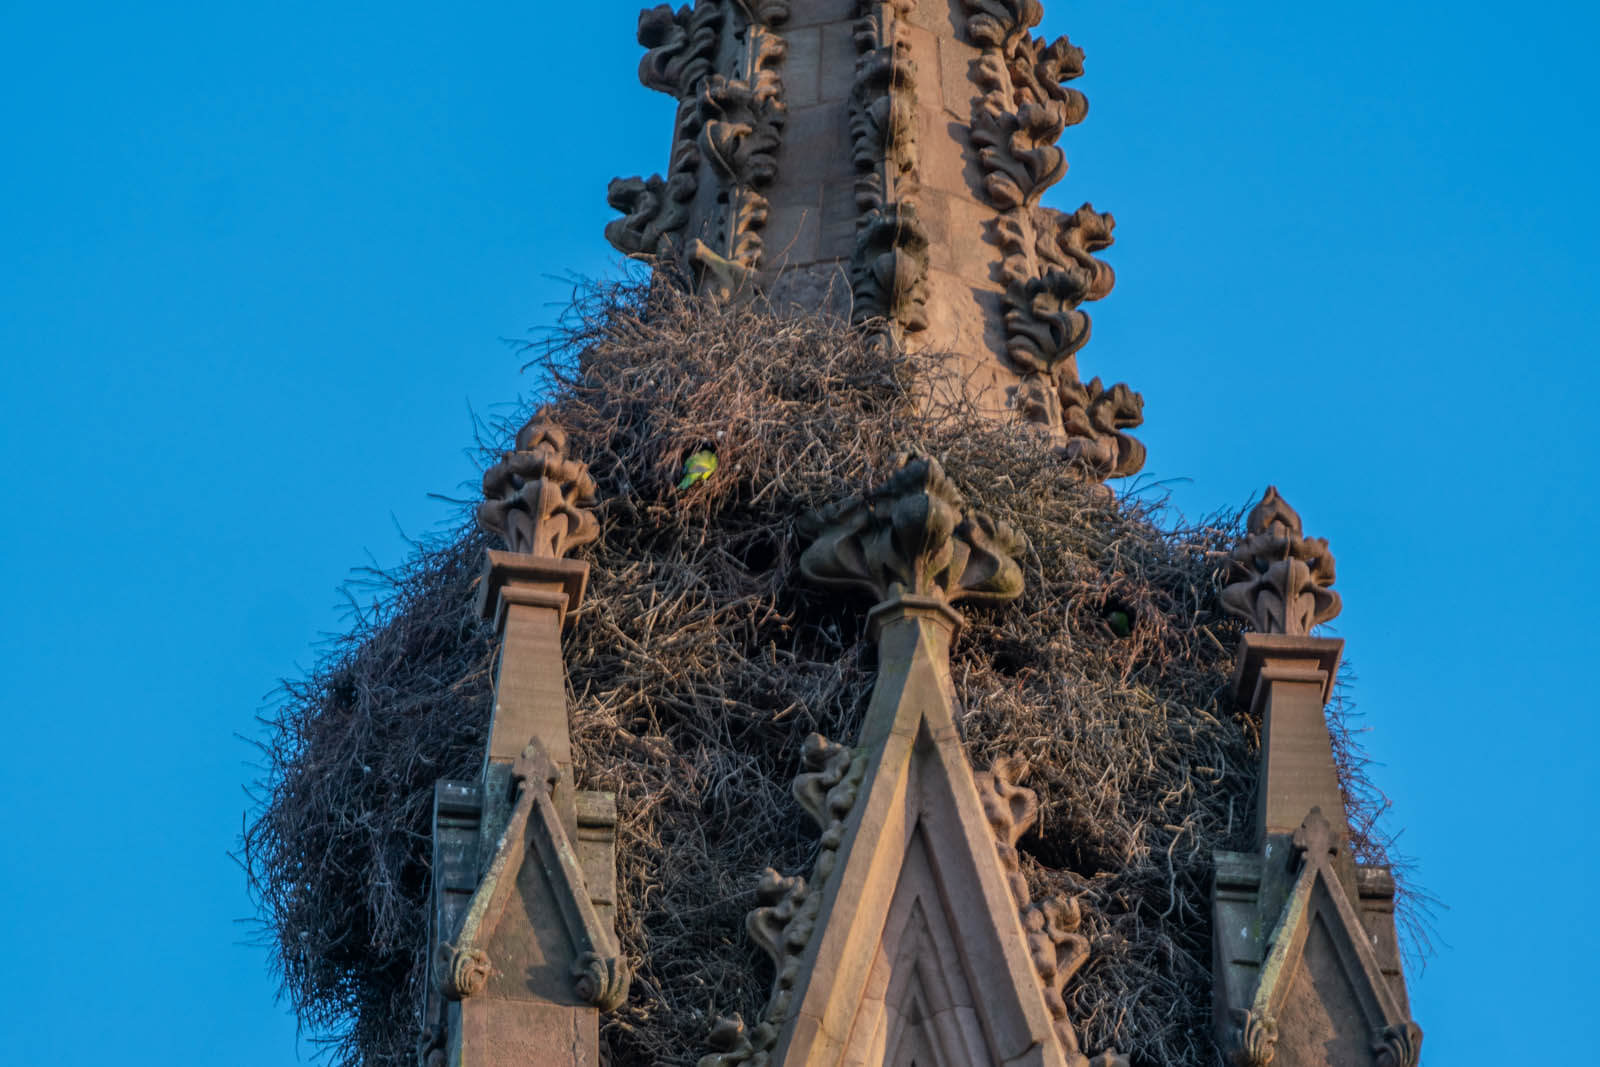 Monk Parakeet nest at the entrance of Green-Wood Cemetery in Brooklyn